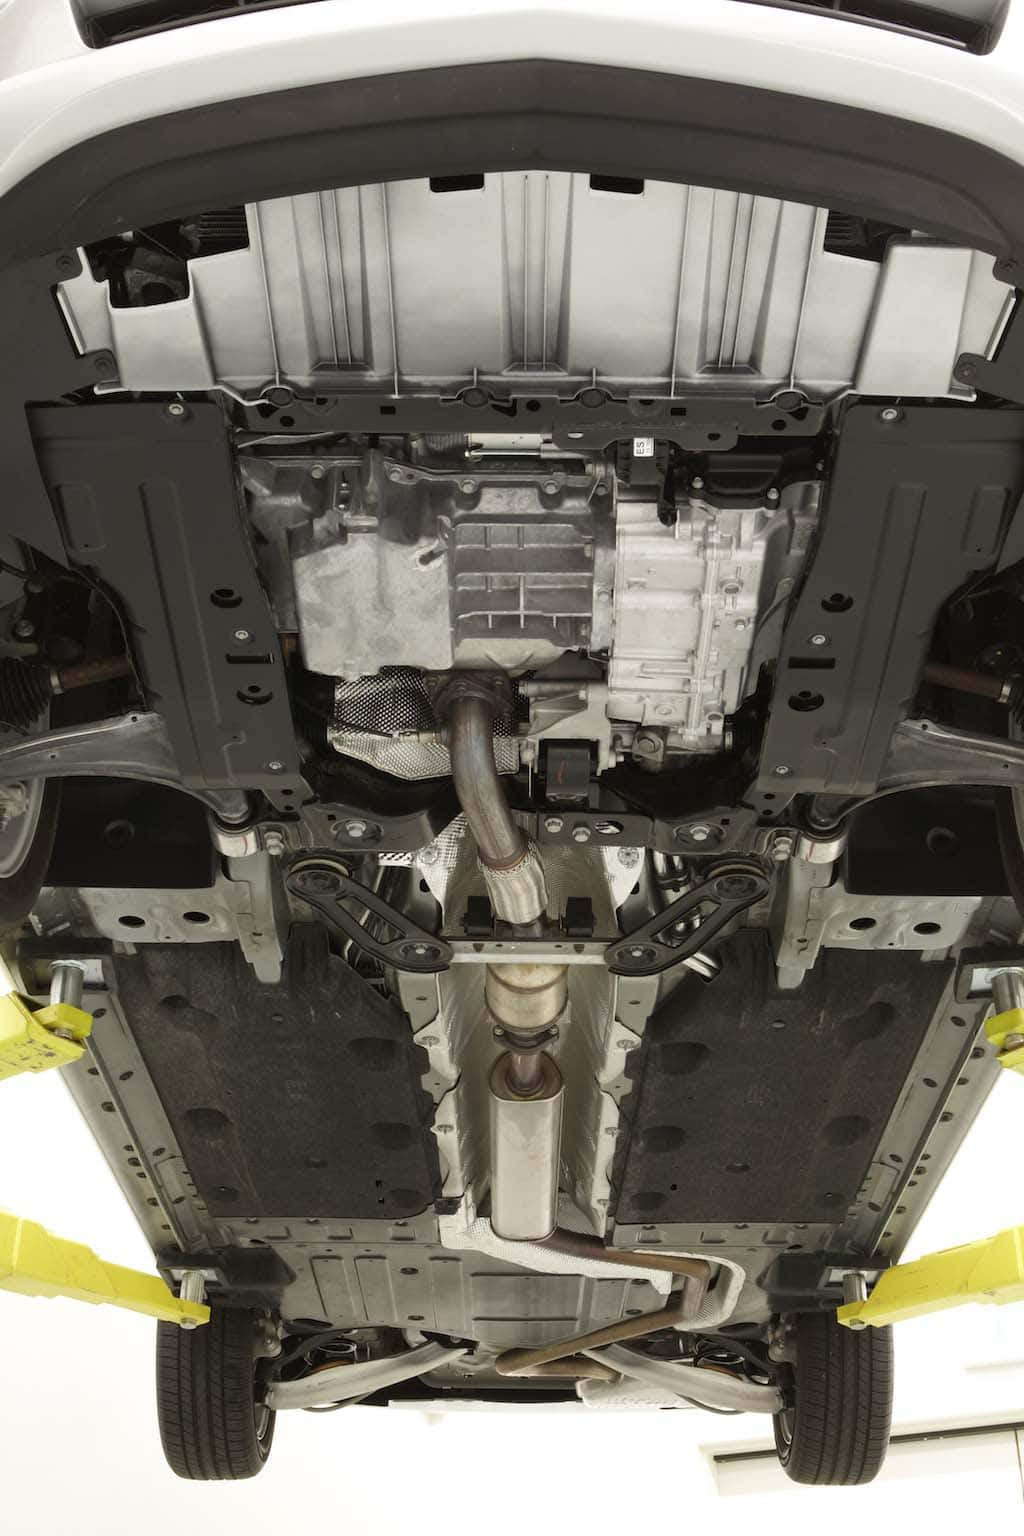 2012 Cruze Engine Diagram Wiring Library